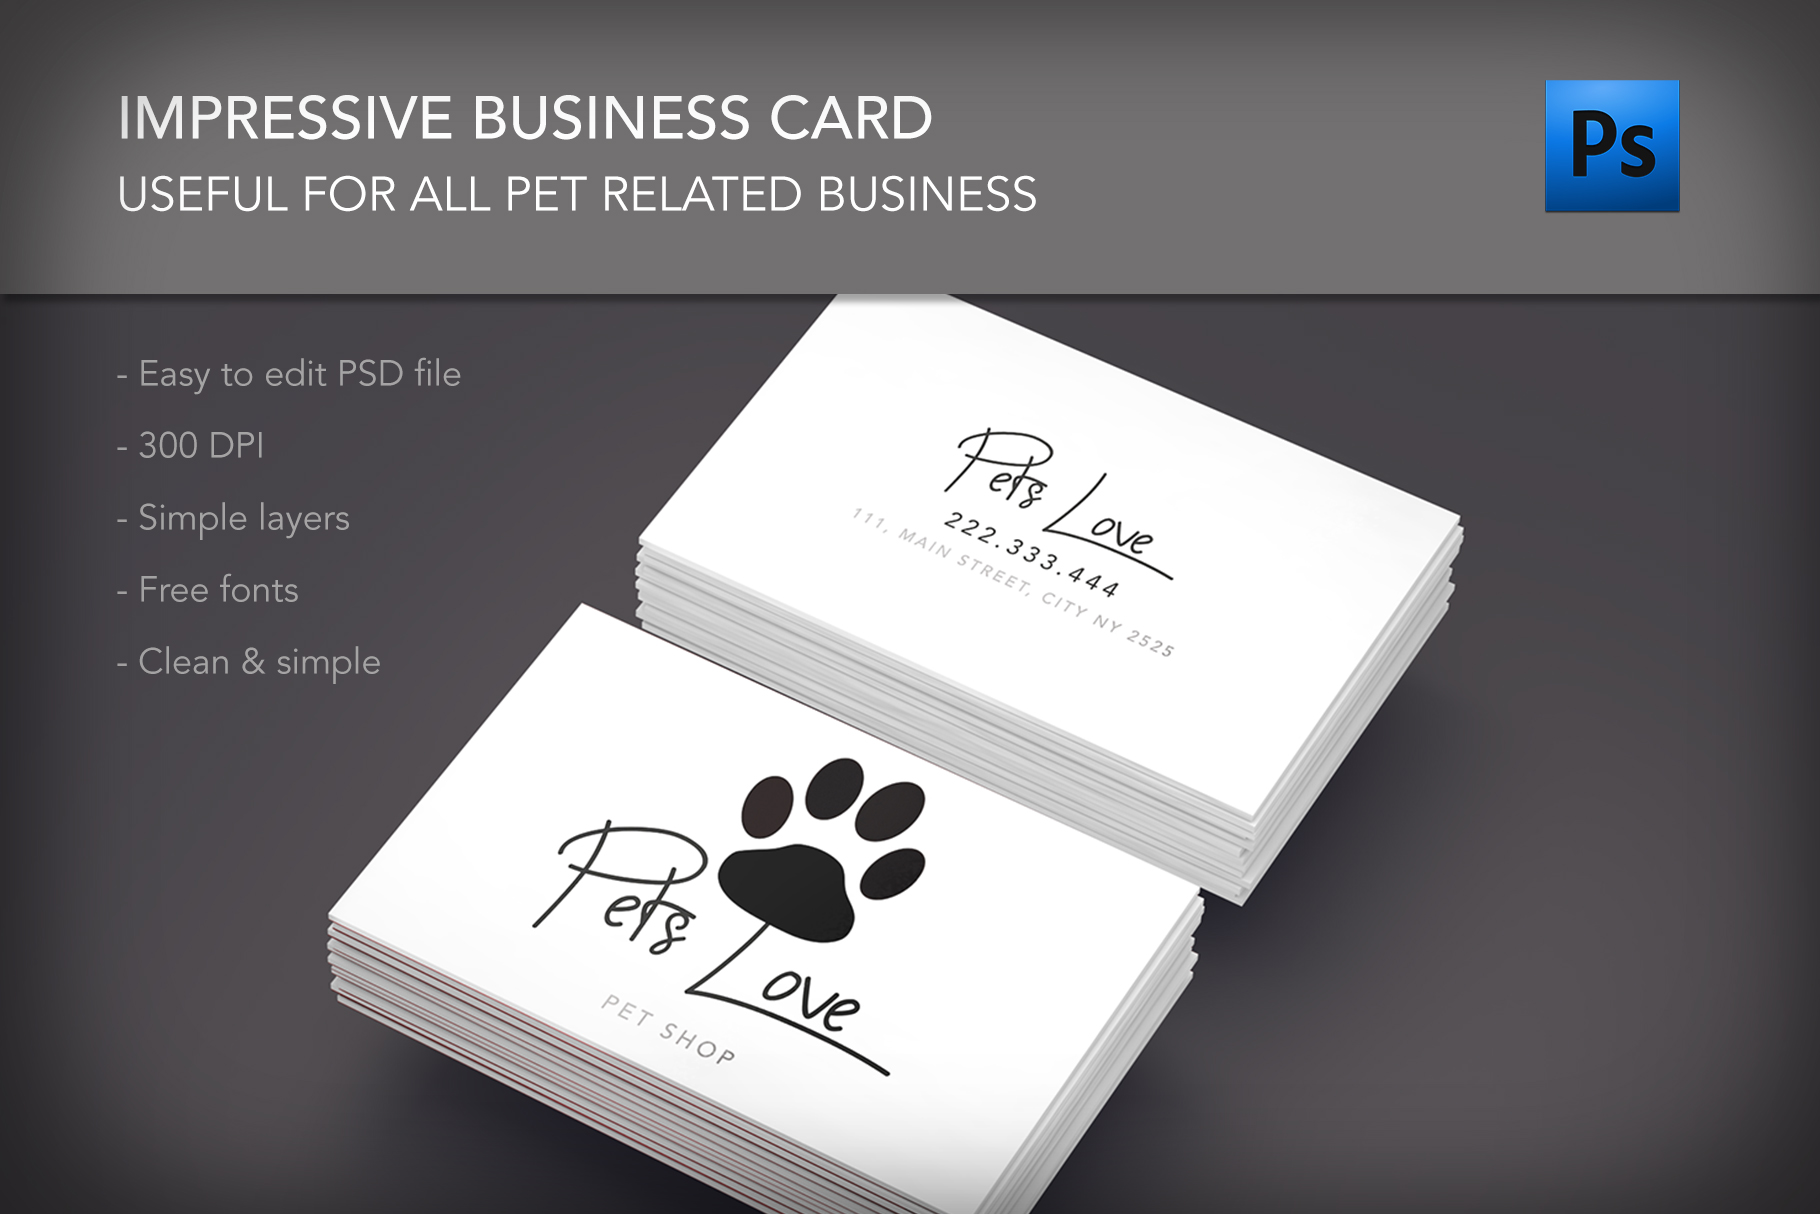 Pet lovers shop clinic business card by design bundles pet lovers shop clinic business card example image 1 colourmoves